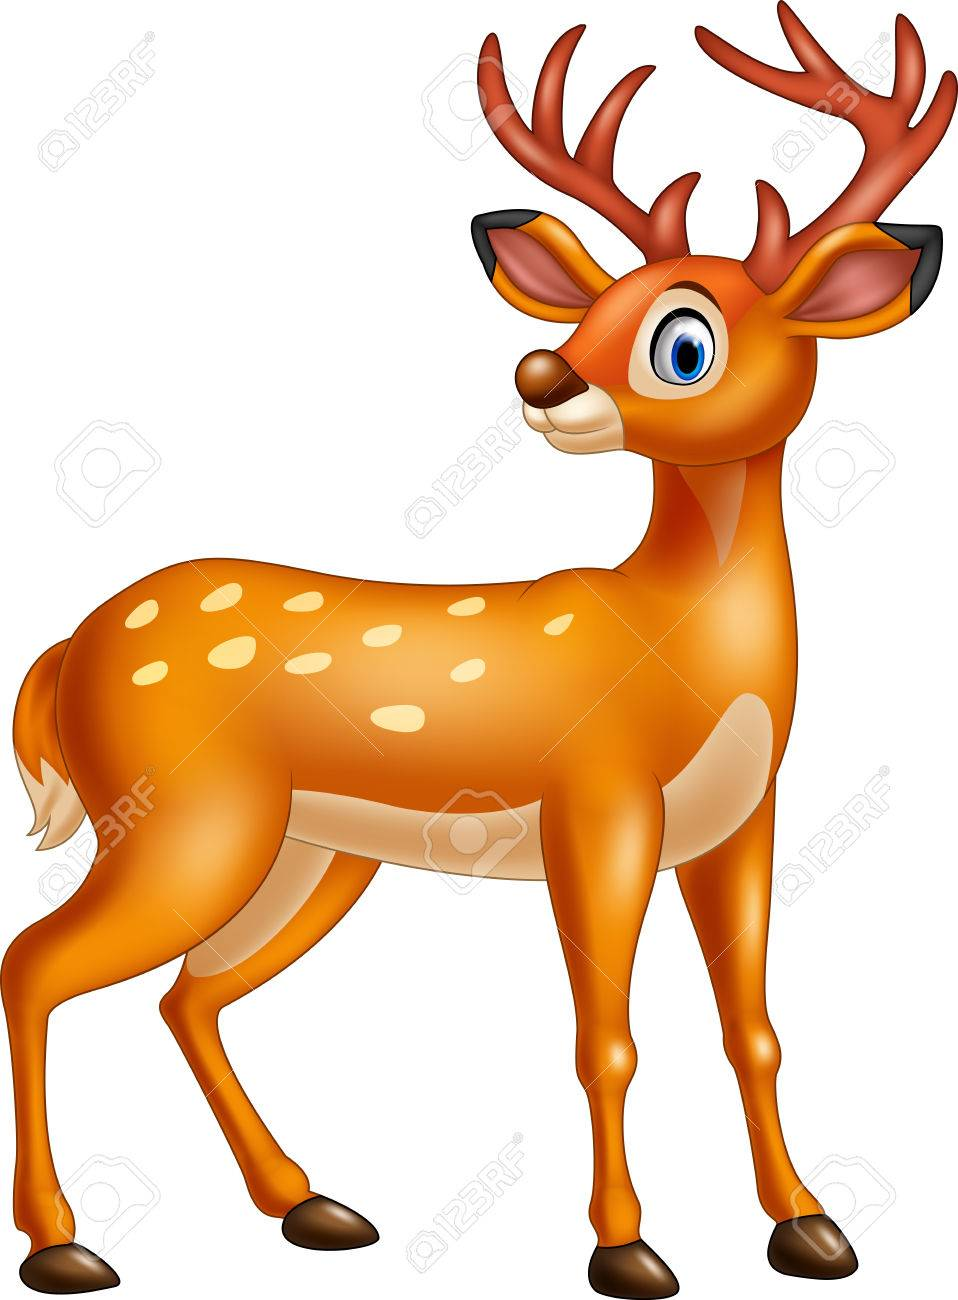 Illustration Of Cartoon Deer Isolated On White Background Royalty